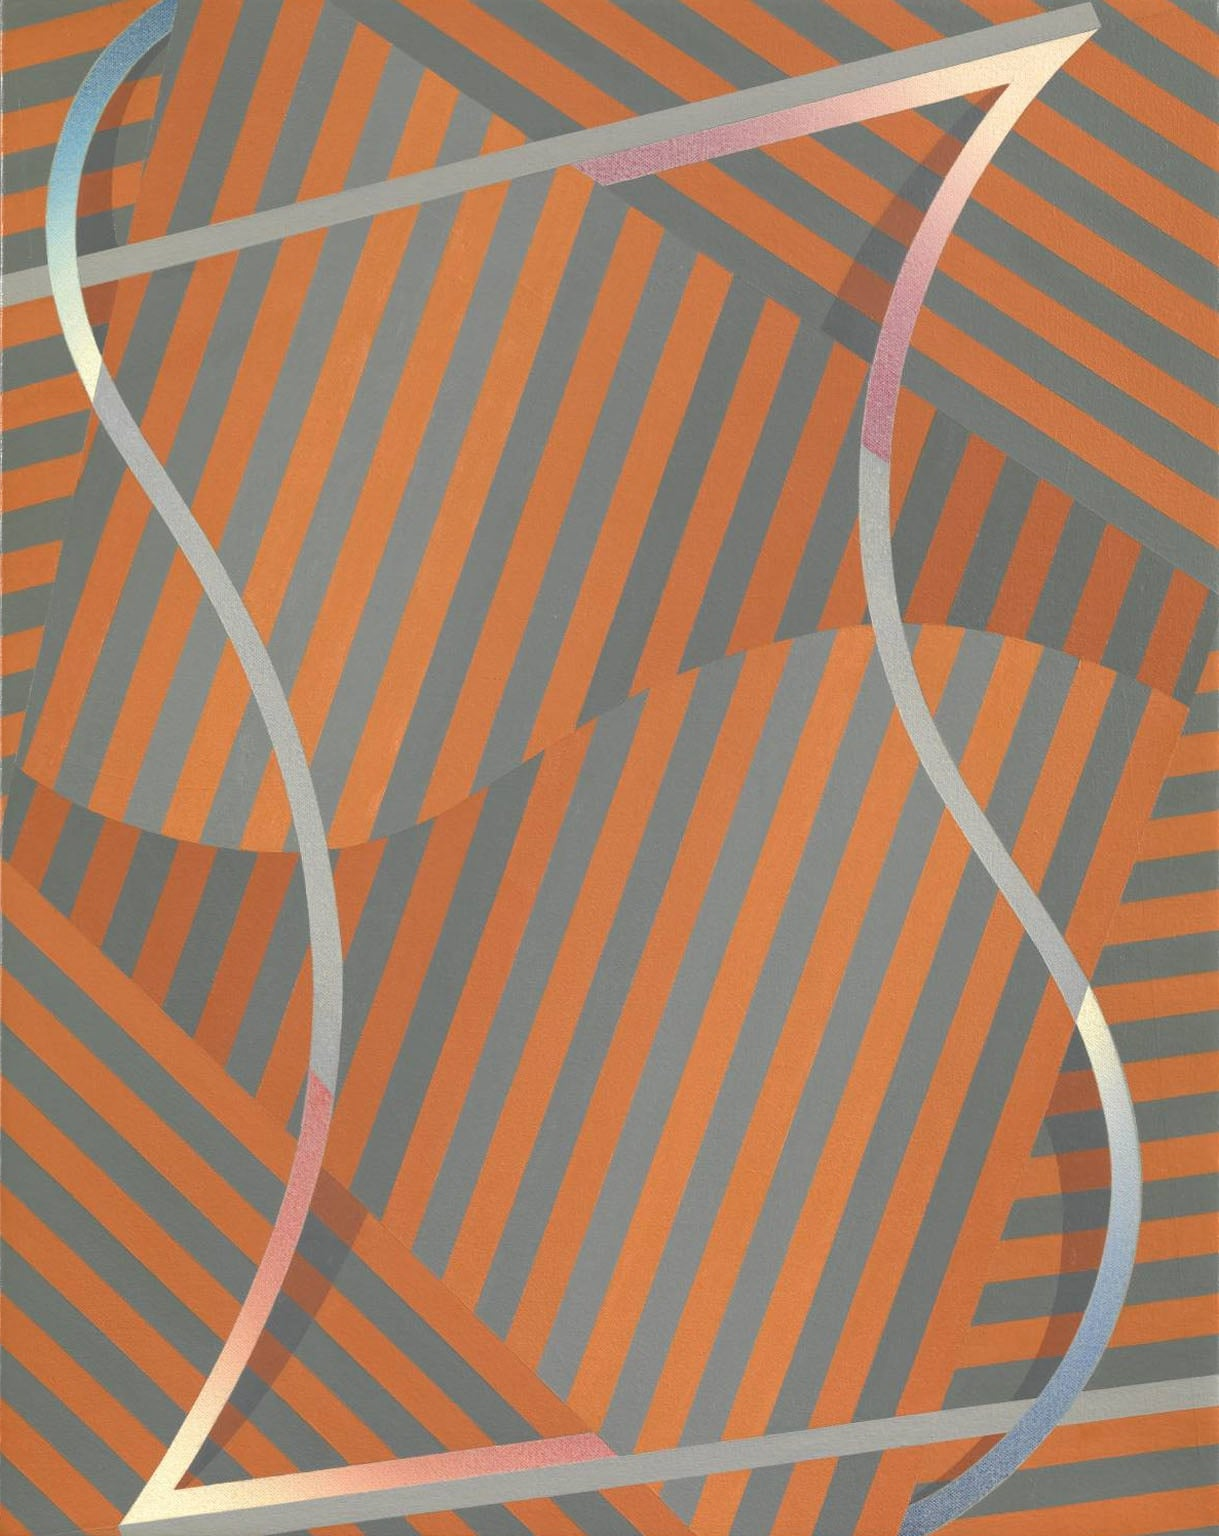 Tomma Abts, Zebe, 2010 - Tate © Tomma Abts